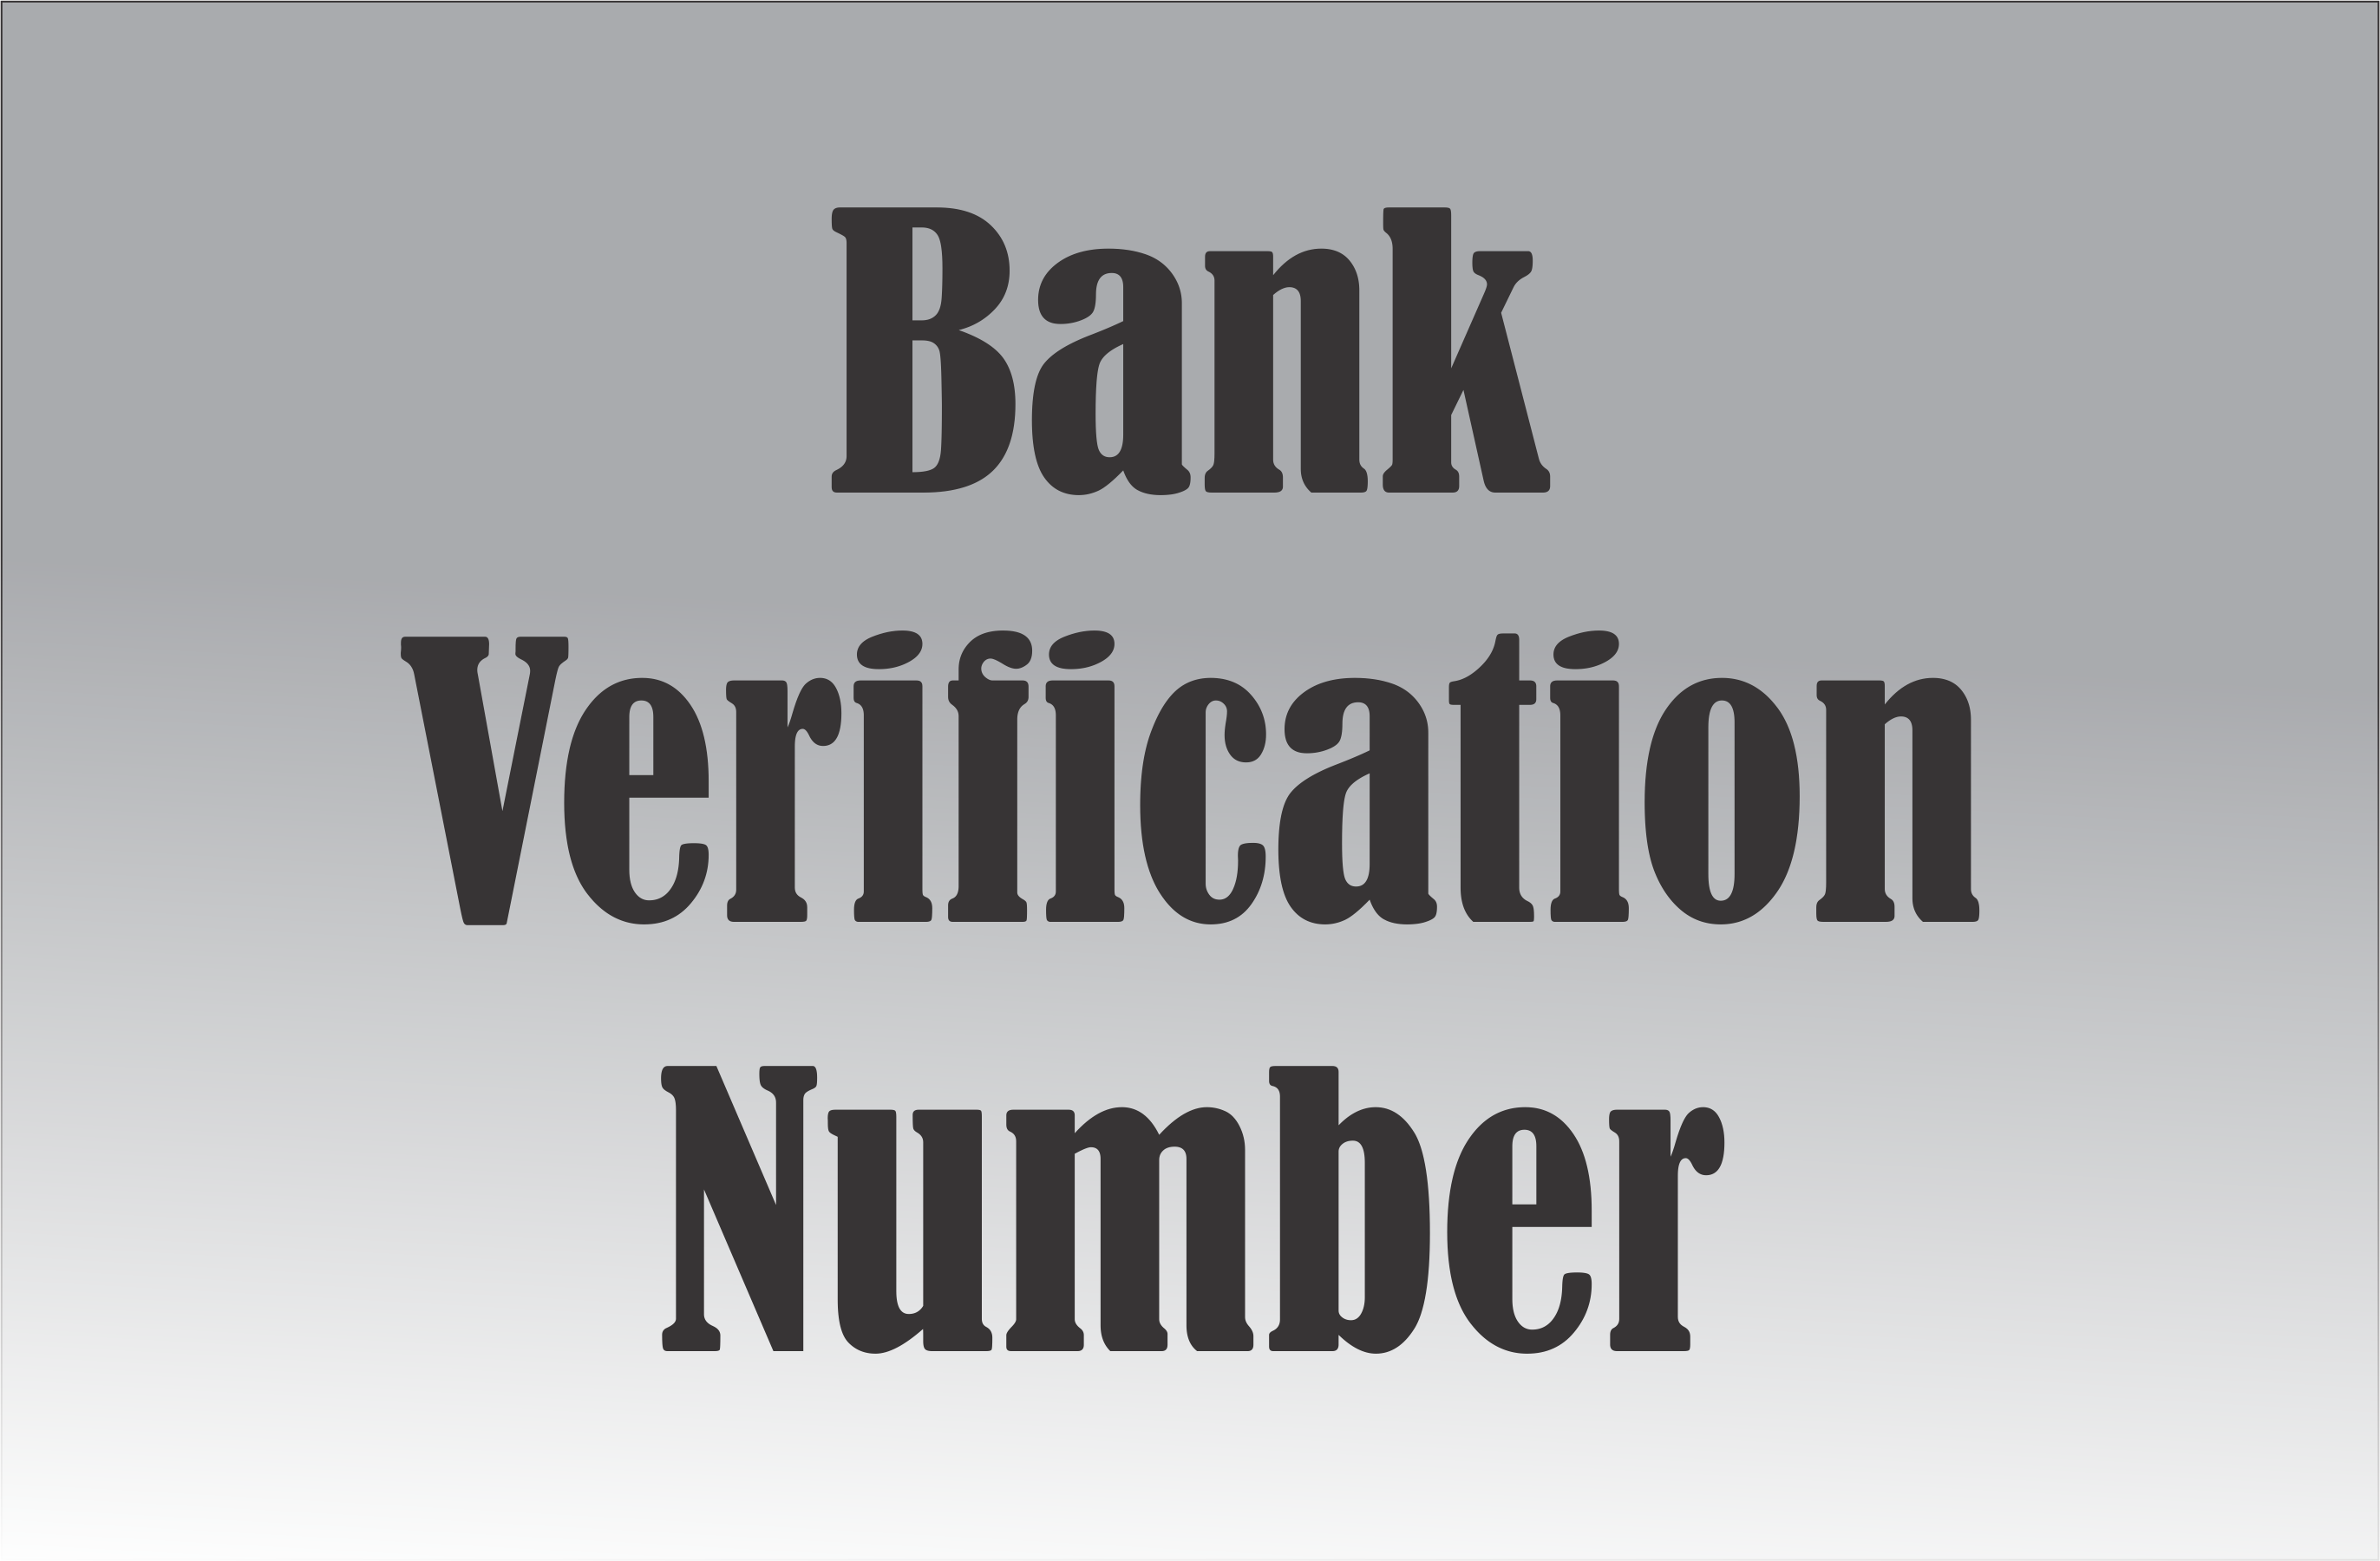 How to check bank verification number